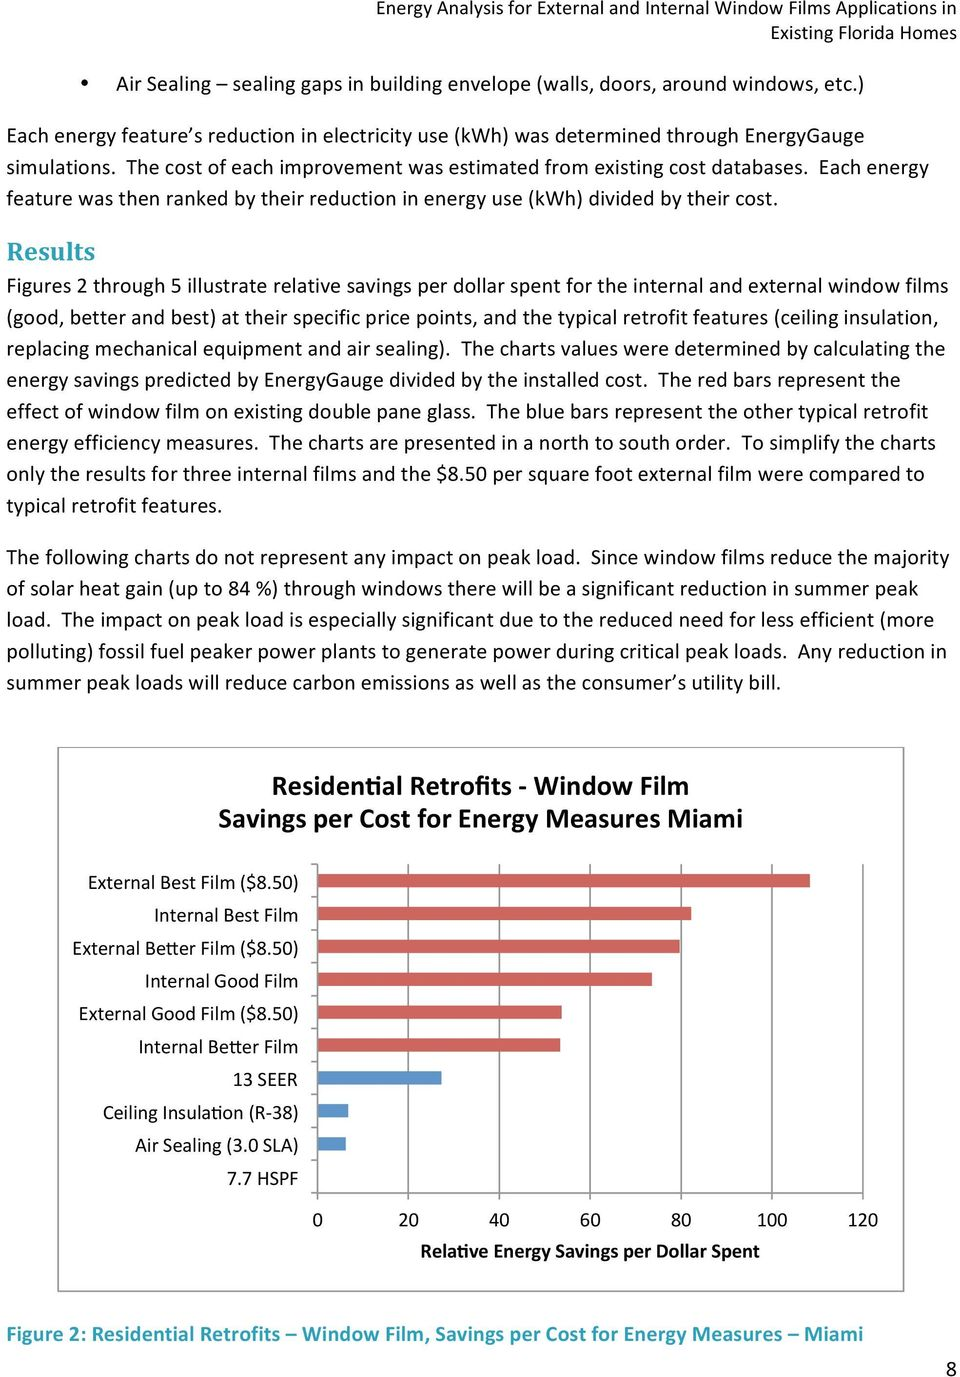 Results Figures 2 through 5 illustrate relative savings per dollar spent for the internal and external window films (good, better and best) at their specific price points, and the typical retrofit